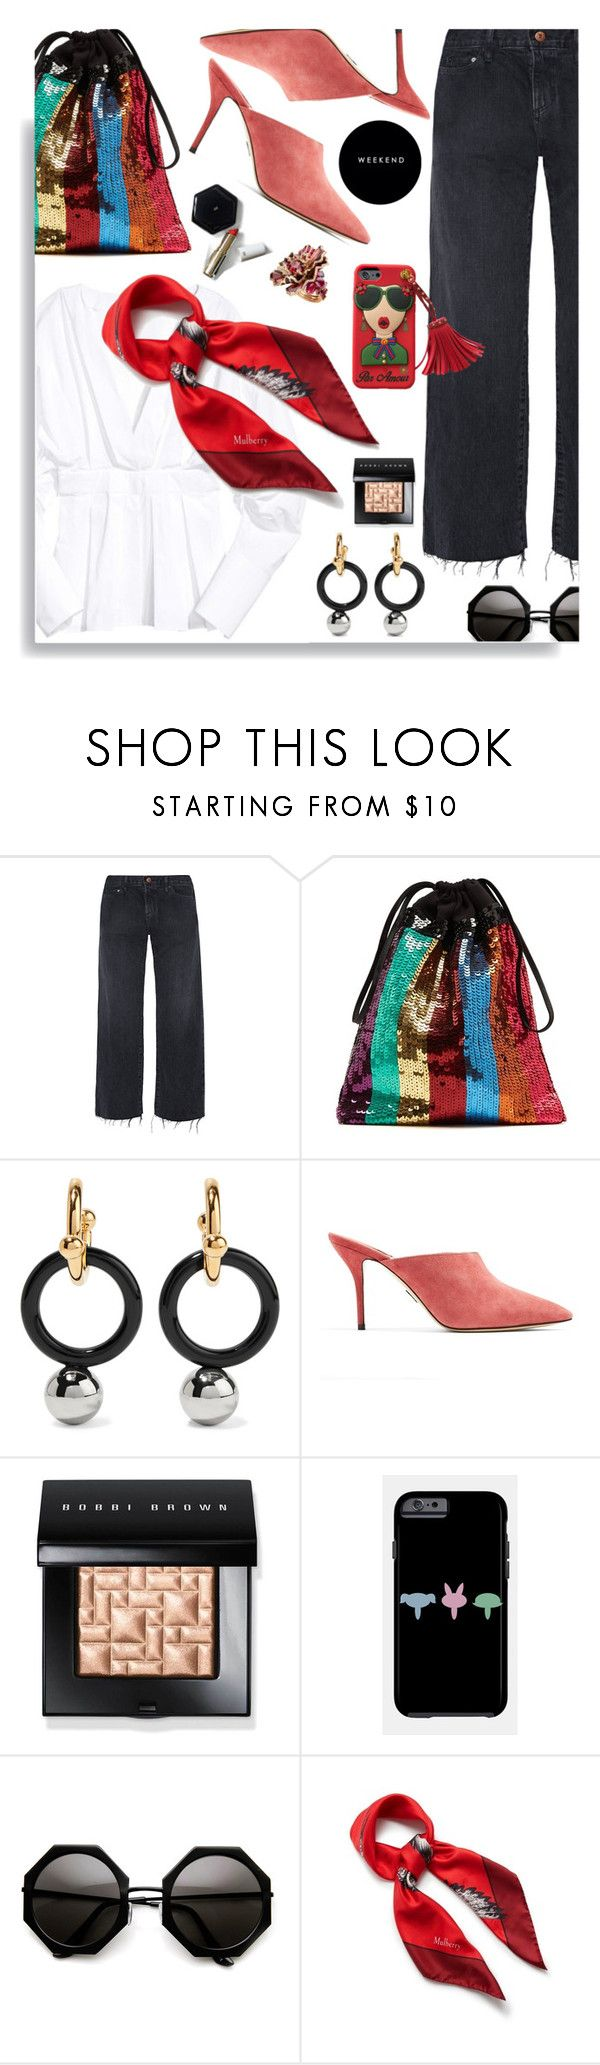 """Weekend"" by hamaly ❤ liked on Polyvore featuring Simon Miller, Attico, Marni, Paul Andrew, Bobbi Brown Cosmetics, Passionata, Mulberry, H&M, outfit and denim"